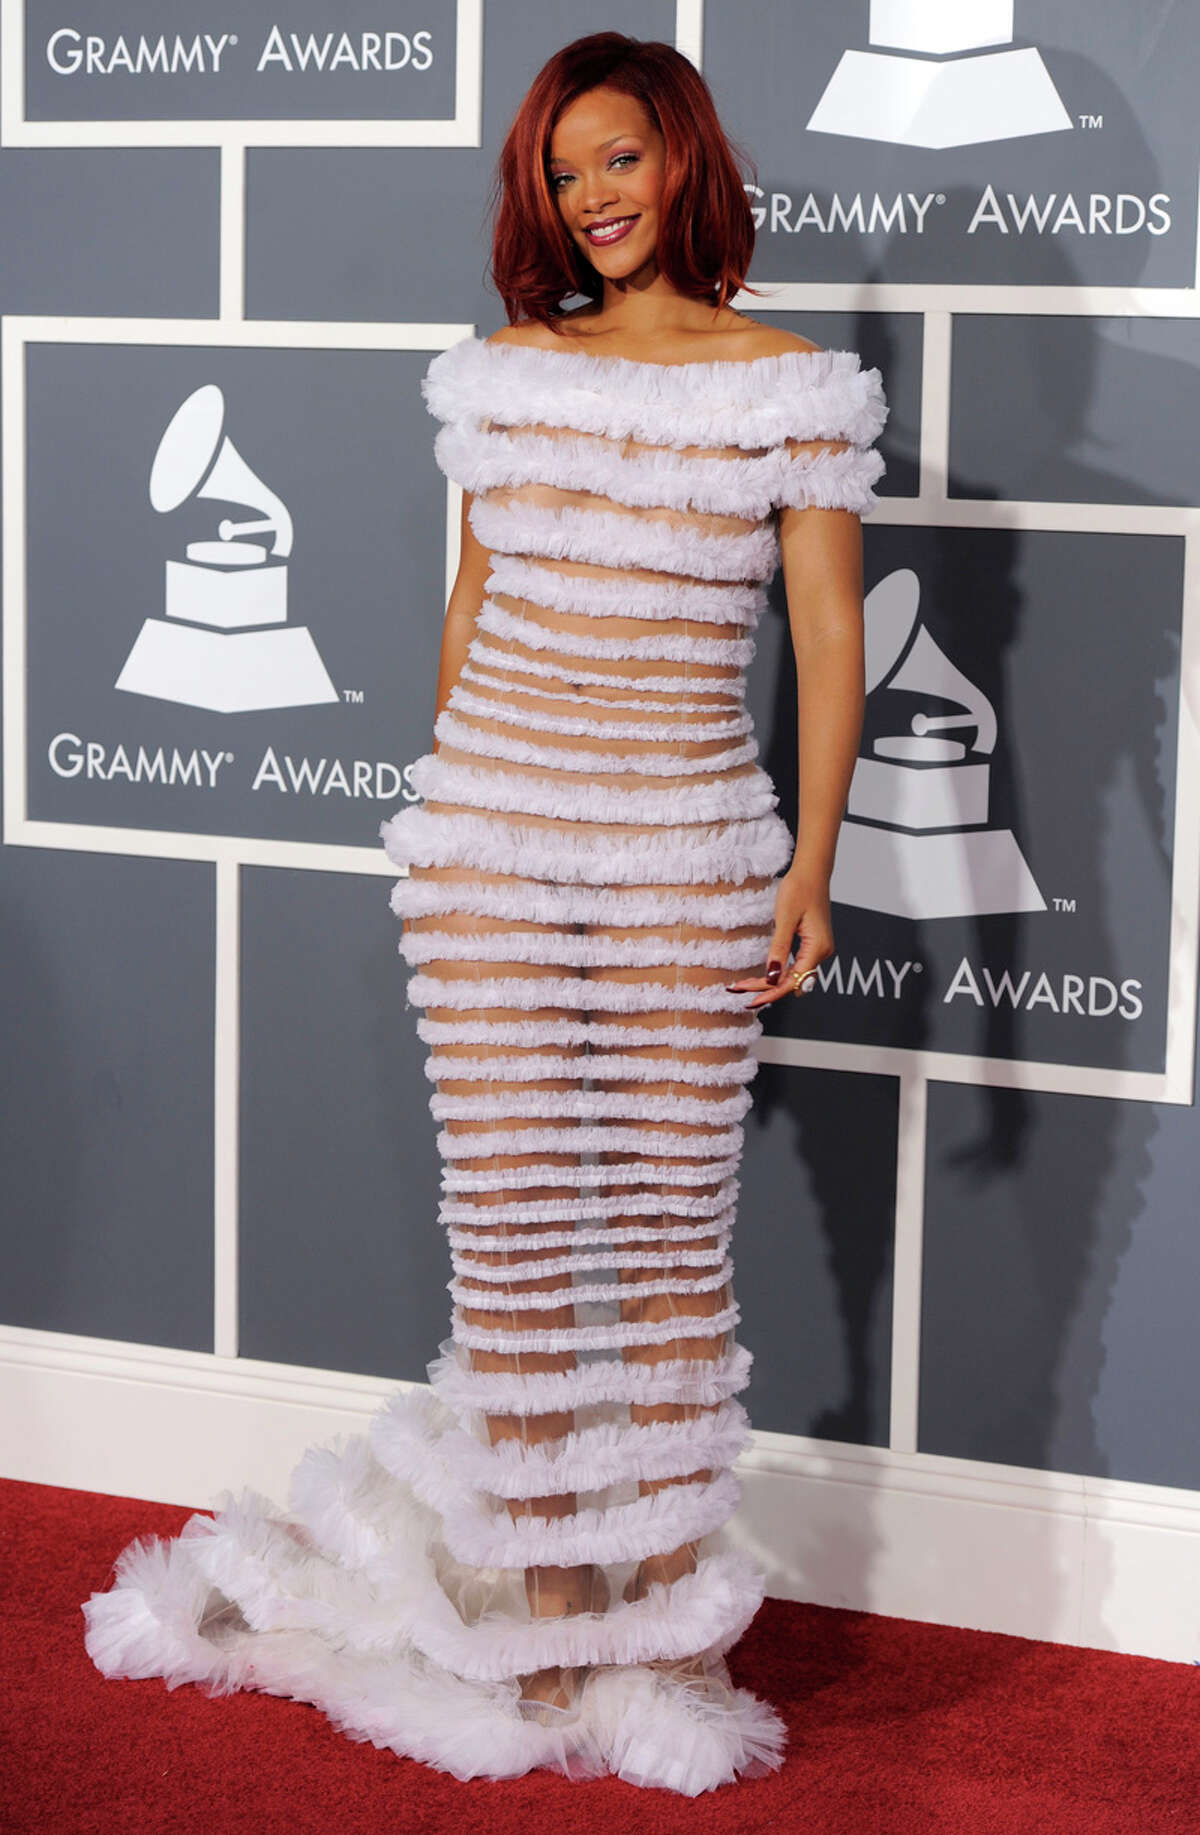 Rihanna, really?: Girlfriend, you look like a towering caterpillar. Wait, scratch that. Let's attach a stick to your head and you're a bottle brush. This wacky gown looks like Jean Paul Gaultier has taken steroid-infused pipe cleaners and stacked them with alternating sheer panels that reveal flesh underneath. We noticed that you sported sparkly pasties, but how about panties? That's anyone's guess unless Britney was nearby. WORDS BY MICHAEL QUINTANILLA / EXPRESS-NEWS; PHOTO BY ASSOCIATED PRESS